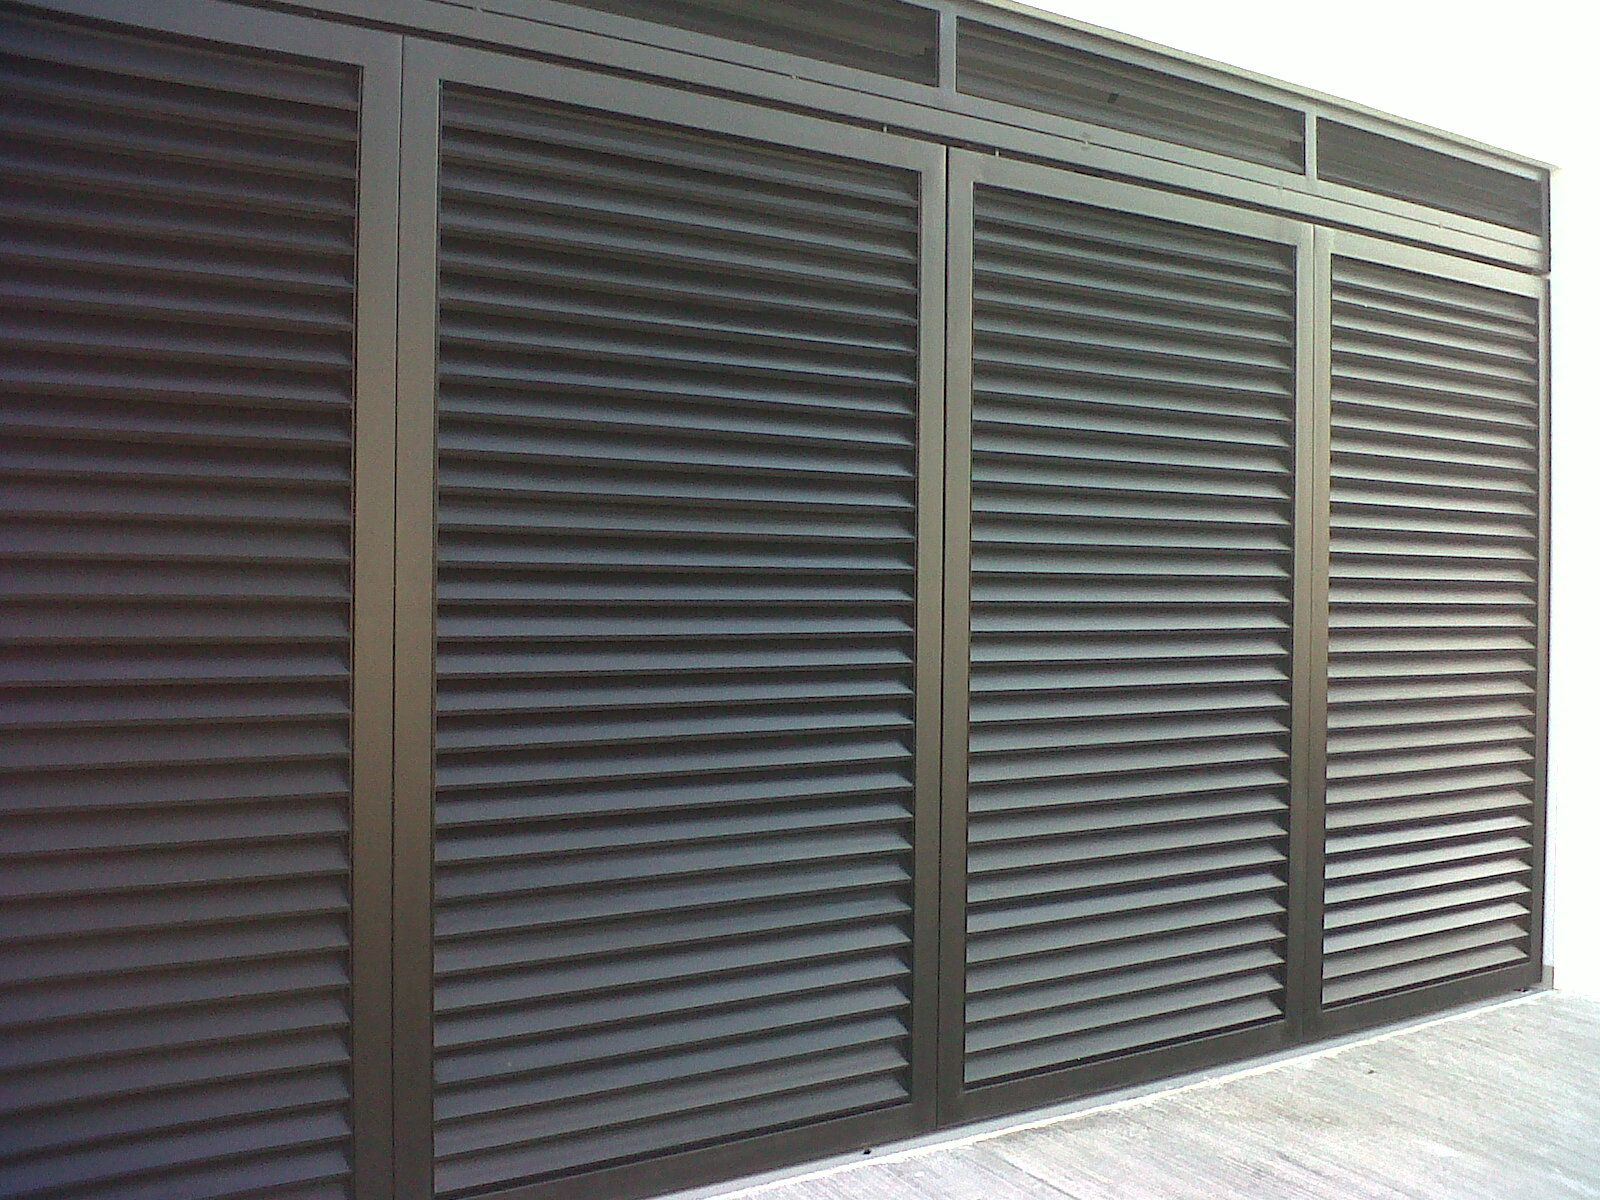 Port n herreria portones pinterest doors for Portones de hierro para garage